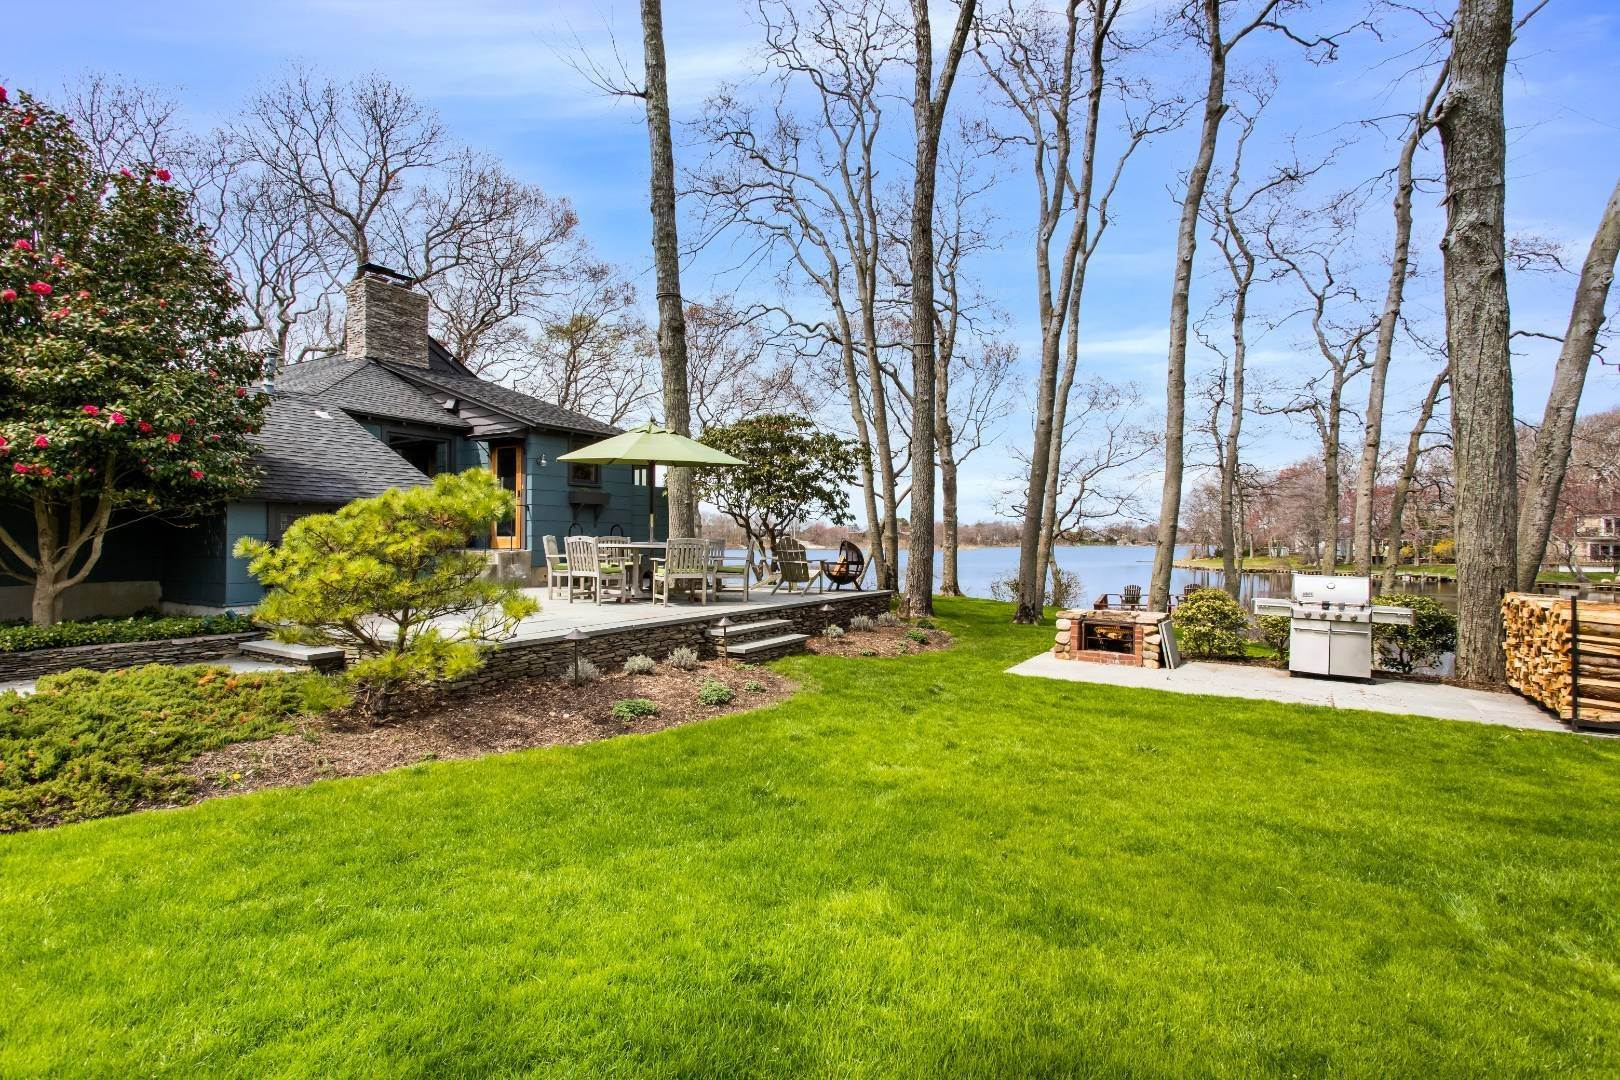 Single Family Home for Sale at Charming 1930's Original On The Great Pond 7005 Soundview Avenue, Southold, NY 11971